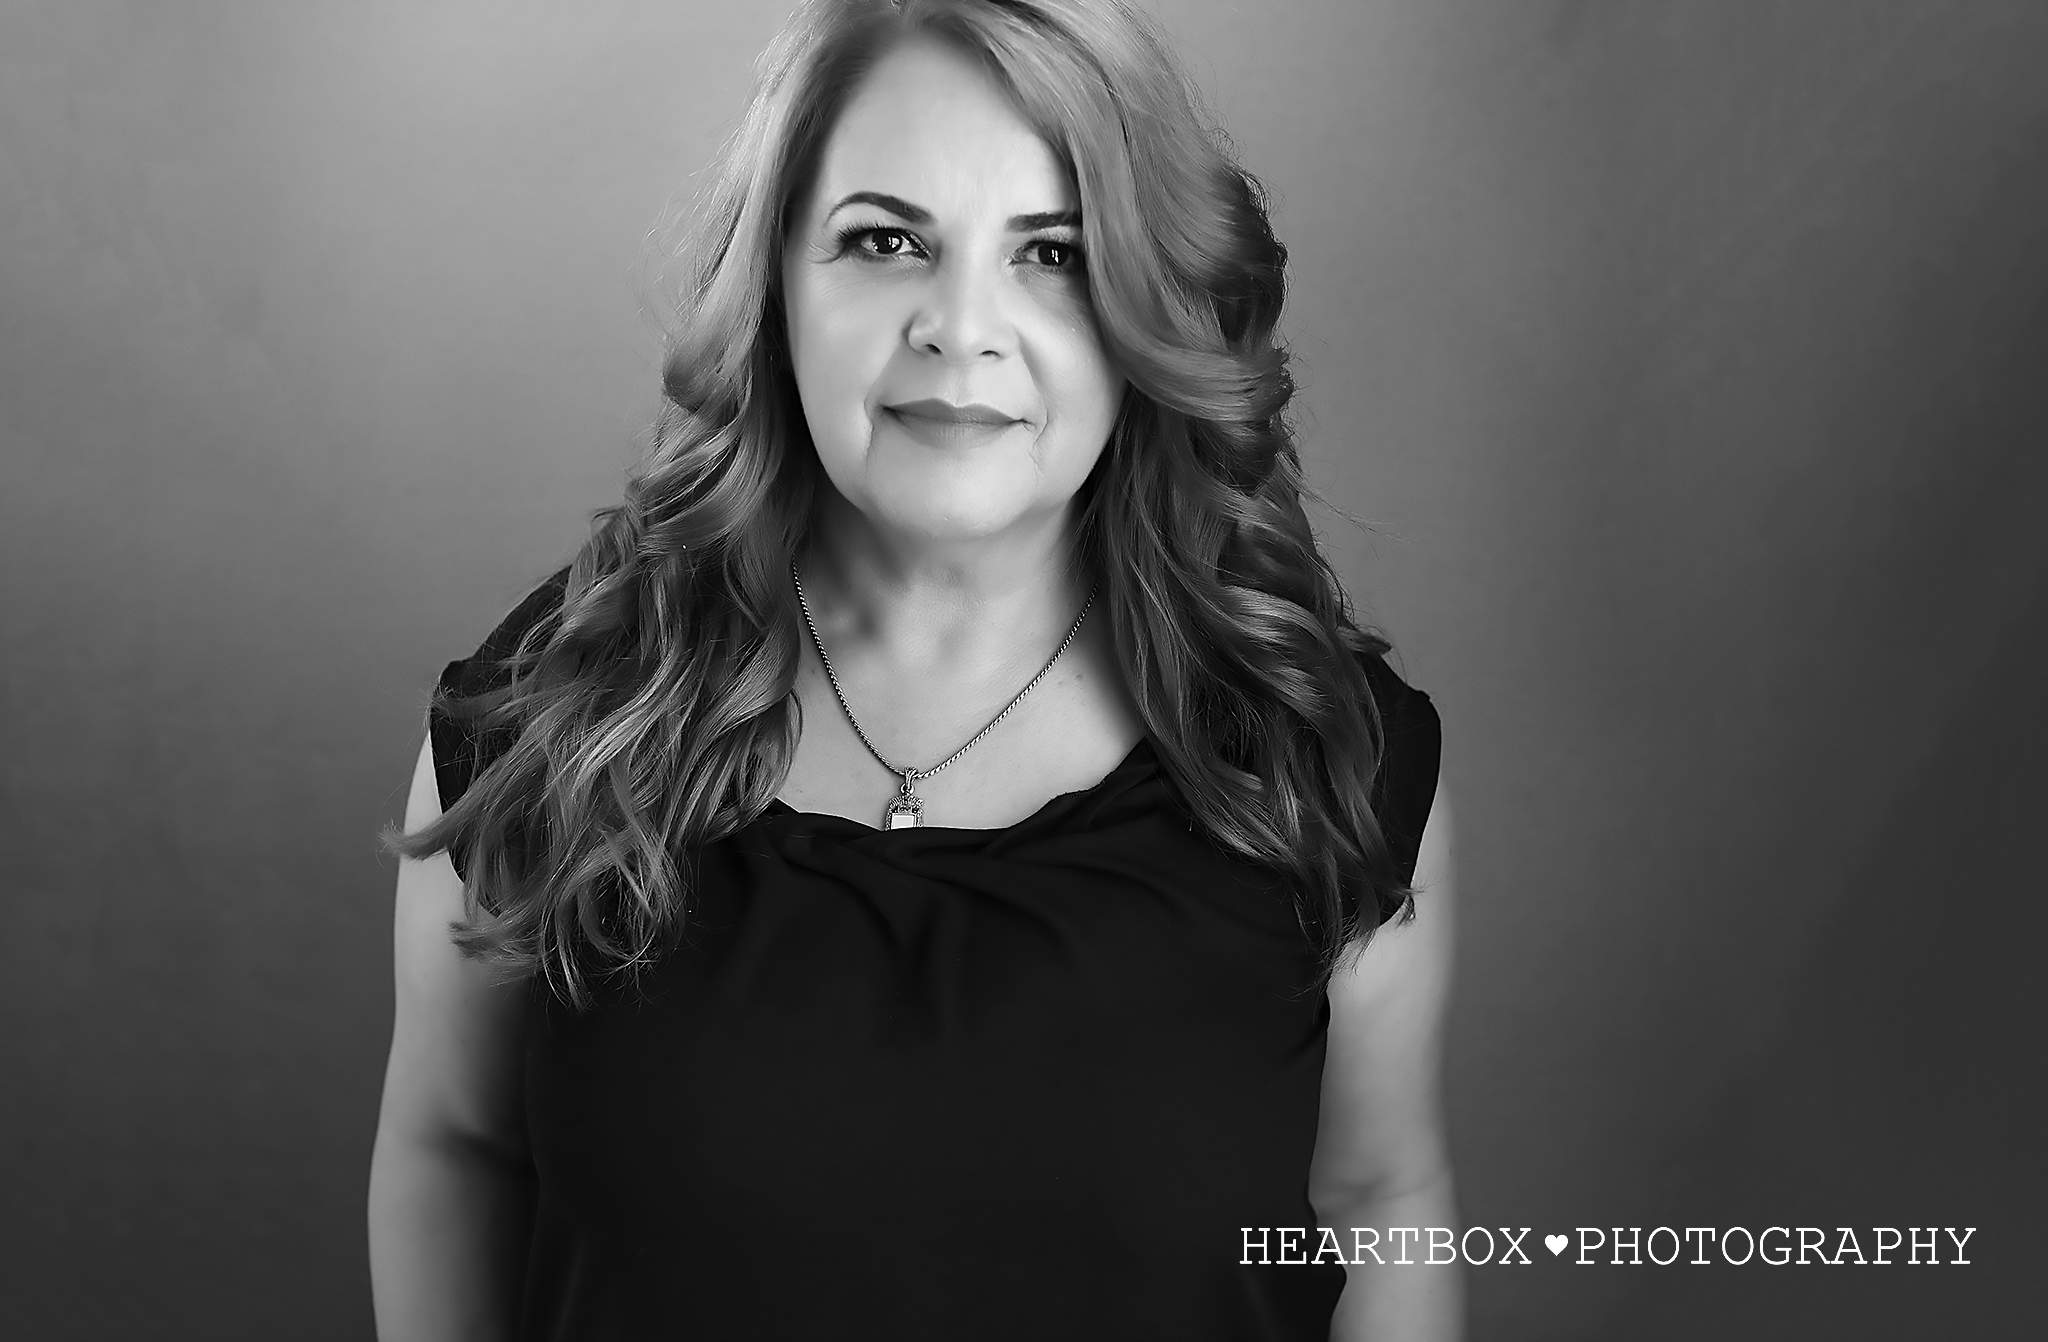 Portraits by Heartbox Photography. Copyright 2019. All rights reserved._1591.jpg